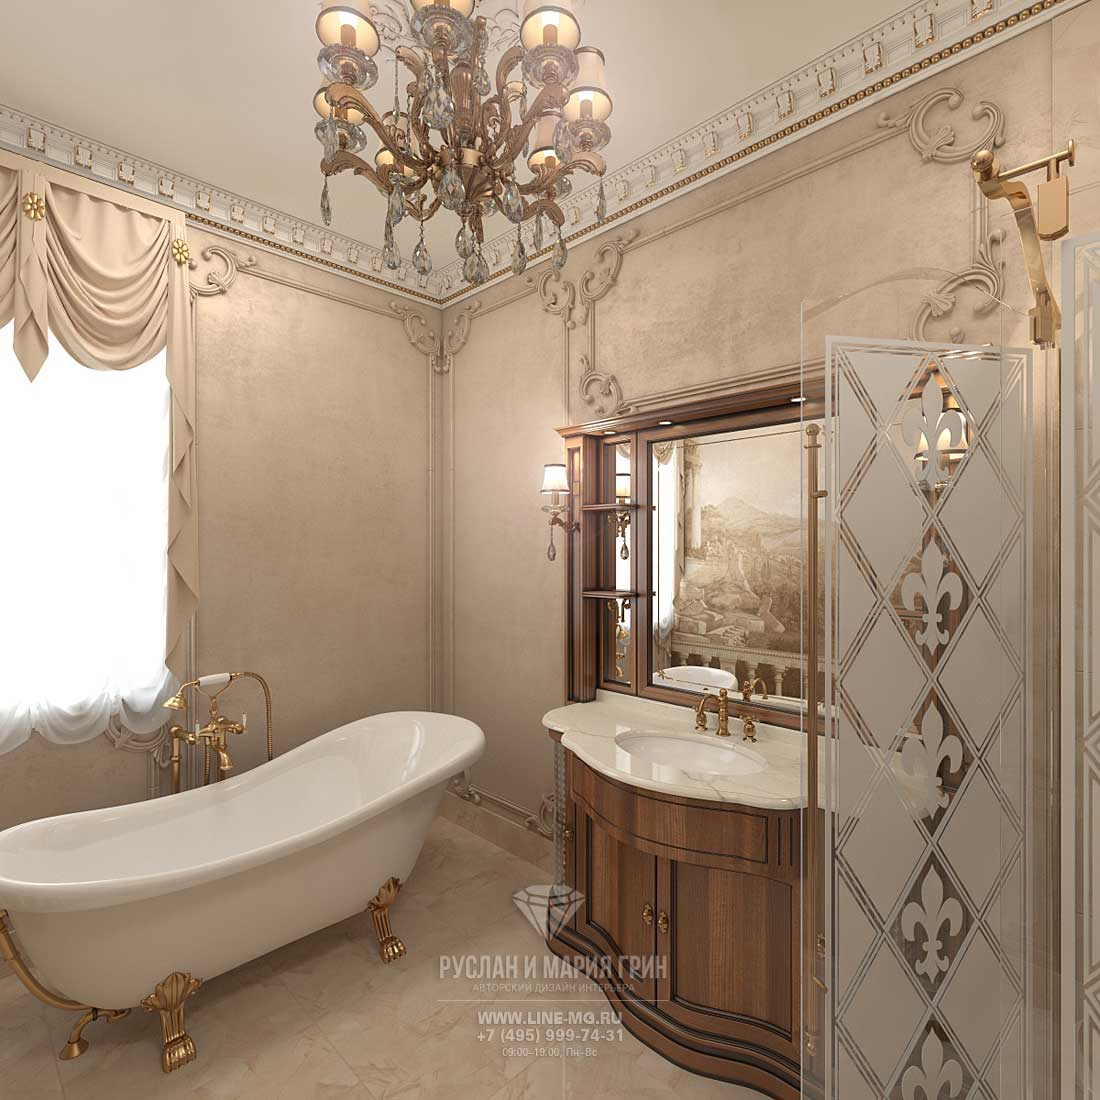 Bathroom Interior Design Ideas 2015 ~ Современные идеи дизайна ванной комнаты в доме Фото